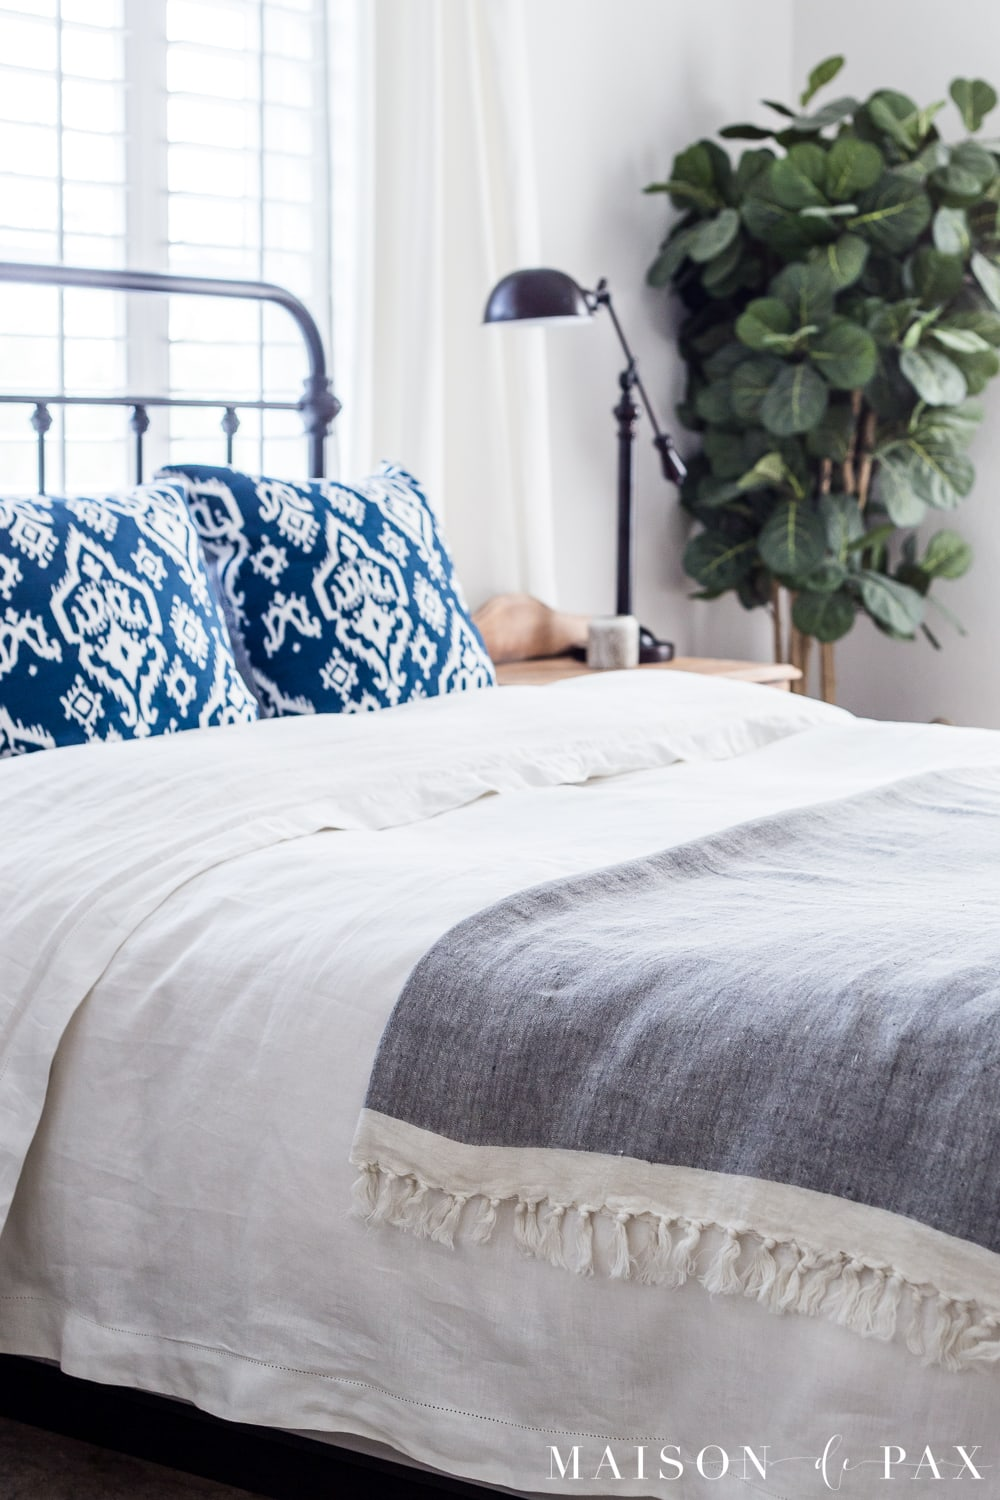 tip #2: use a linen throw... Looking to add a seasonal touch to your bedroom?  Don't miss these incredibly simple master bedroom decorating ideas for spring! #springdecor #springbedroom #nightstand #modernfarmhouse